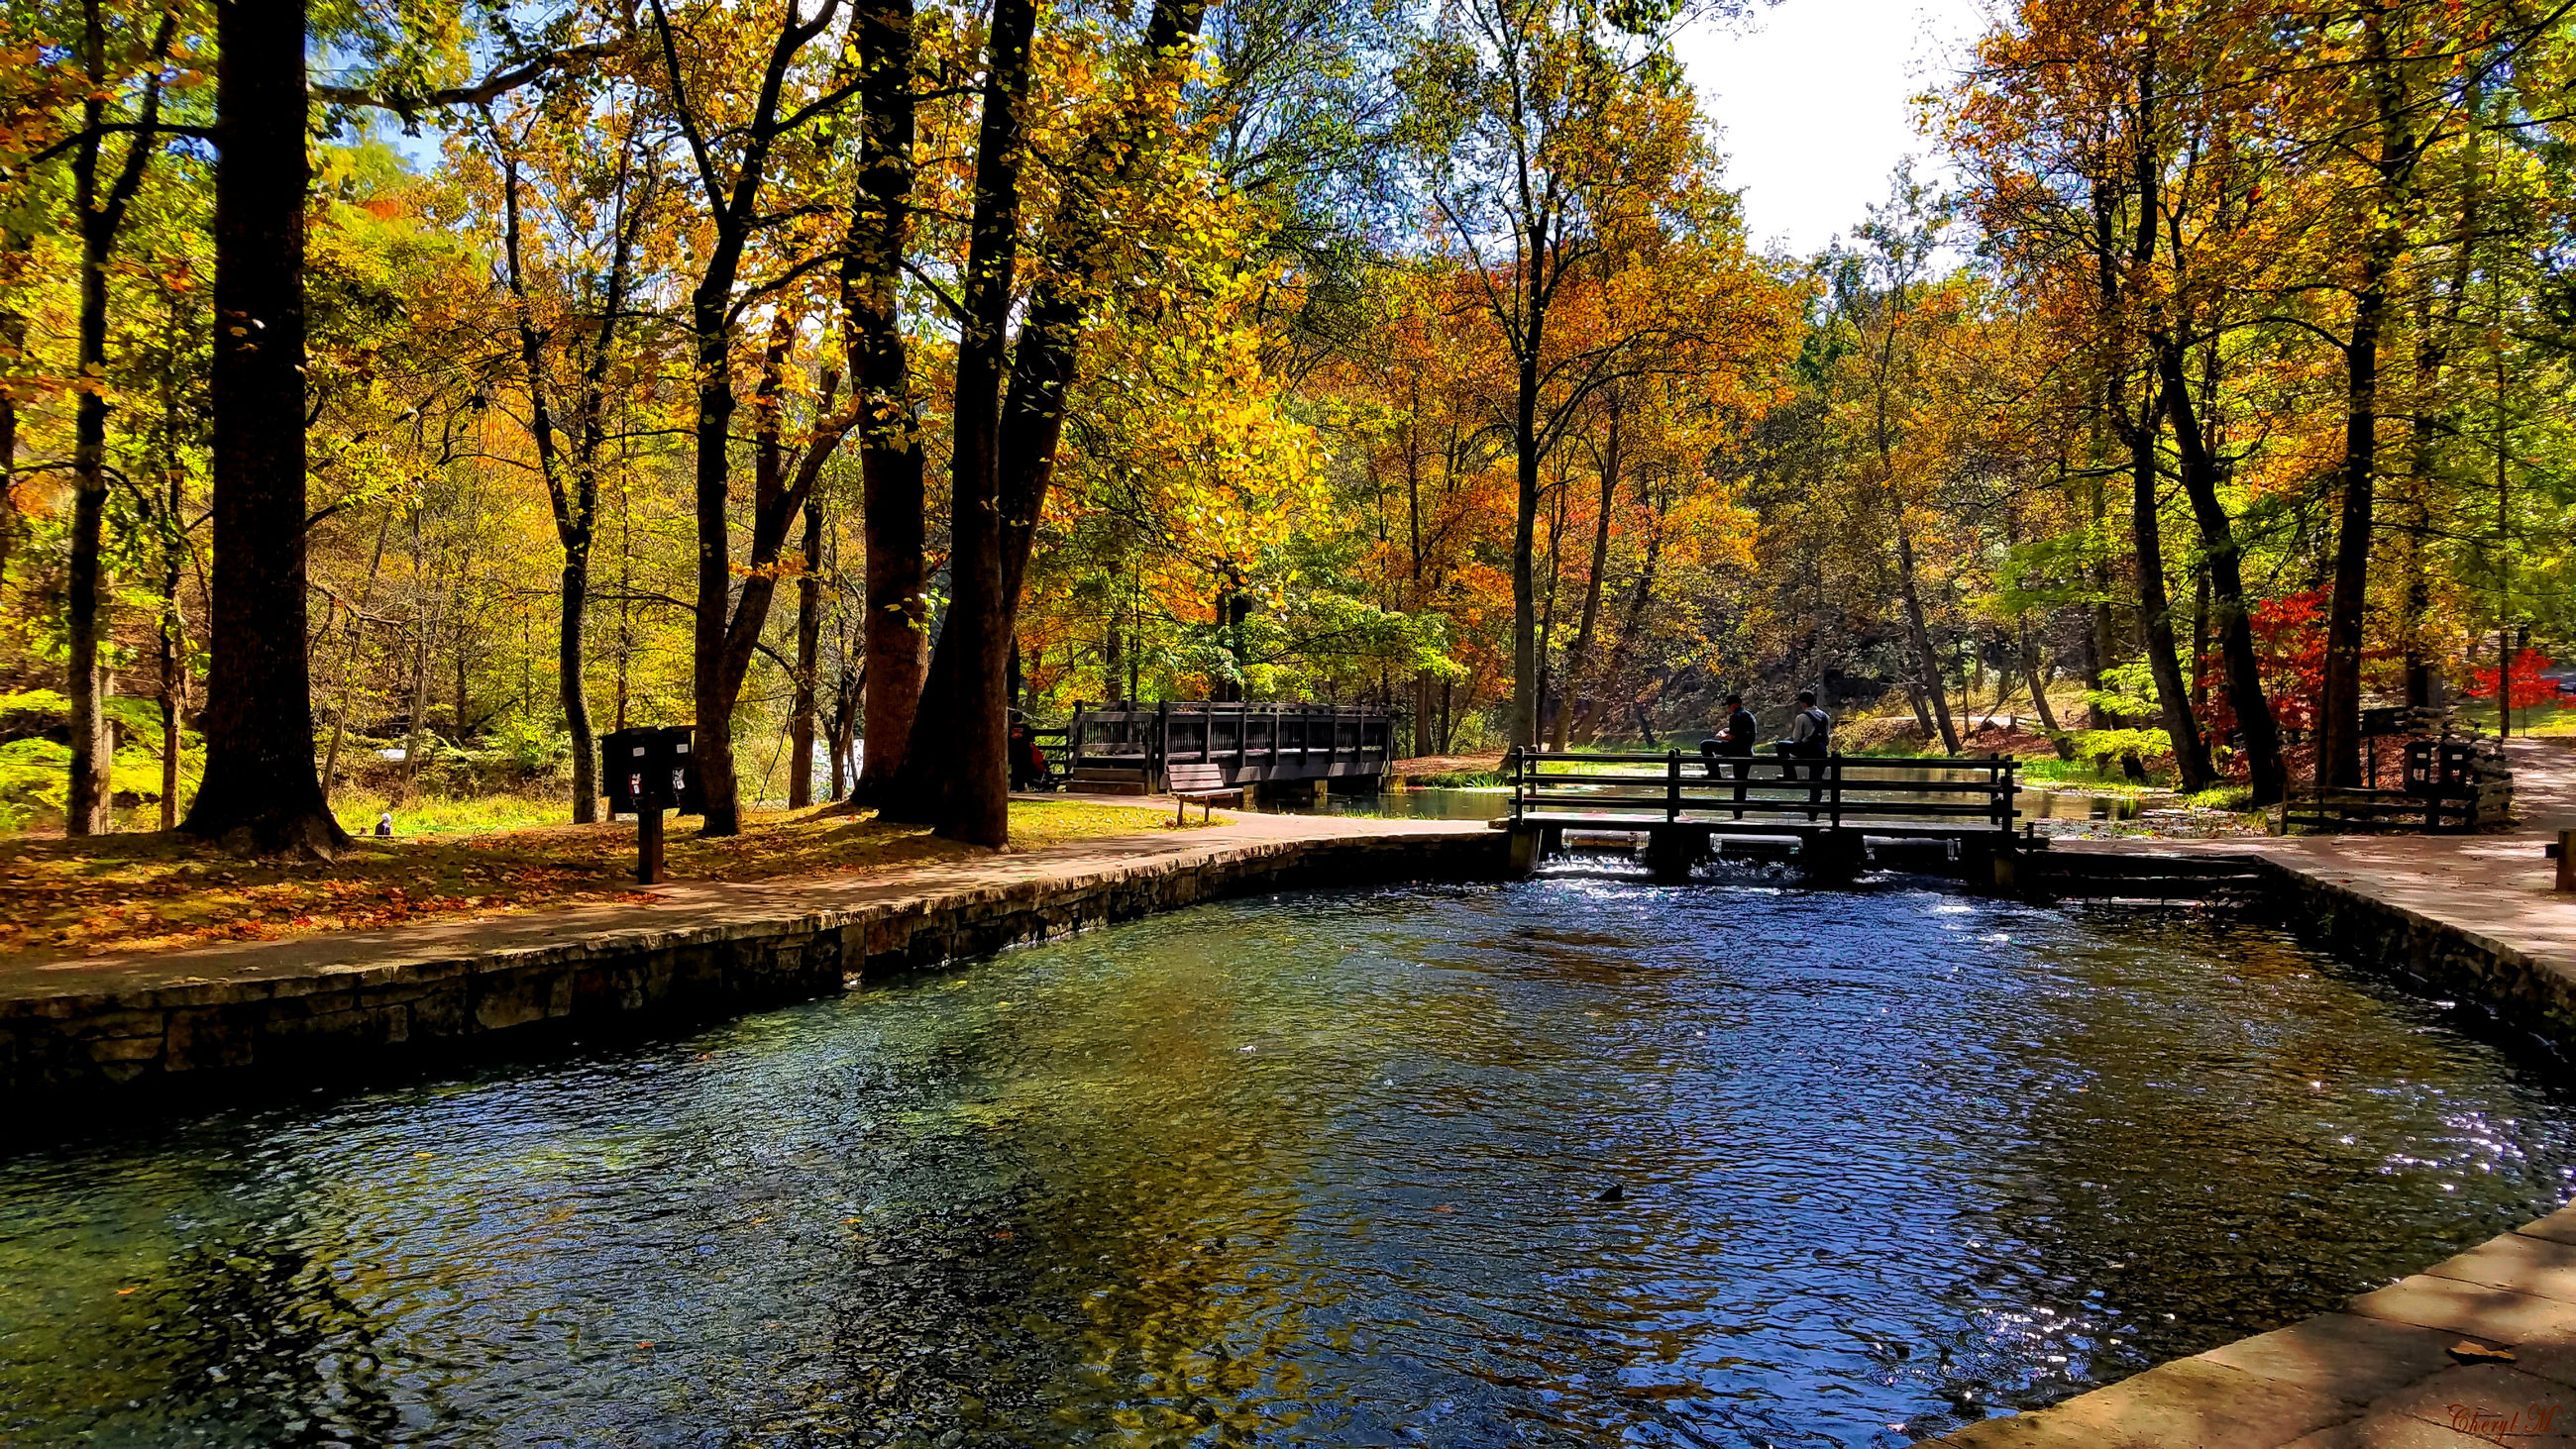 tree, water, autumn, season, change, tranquil scene, tranquility, tree trunk, scenics, growth, beauty in nature, nature, branch, park, day, waterfront, canal, tourism, vacations, non-urban scene, outdoors, park bench, woodland, natural condition